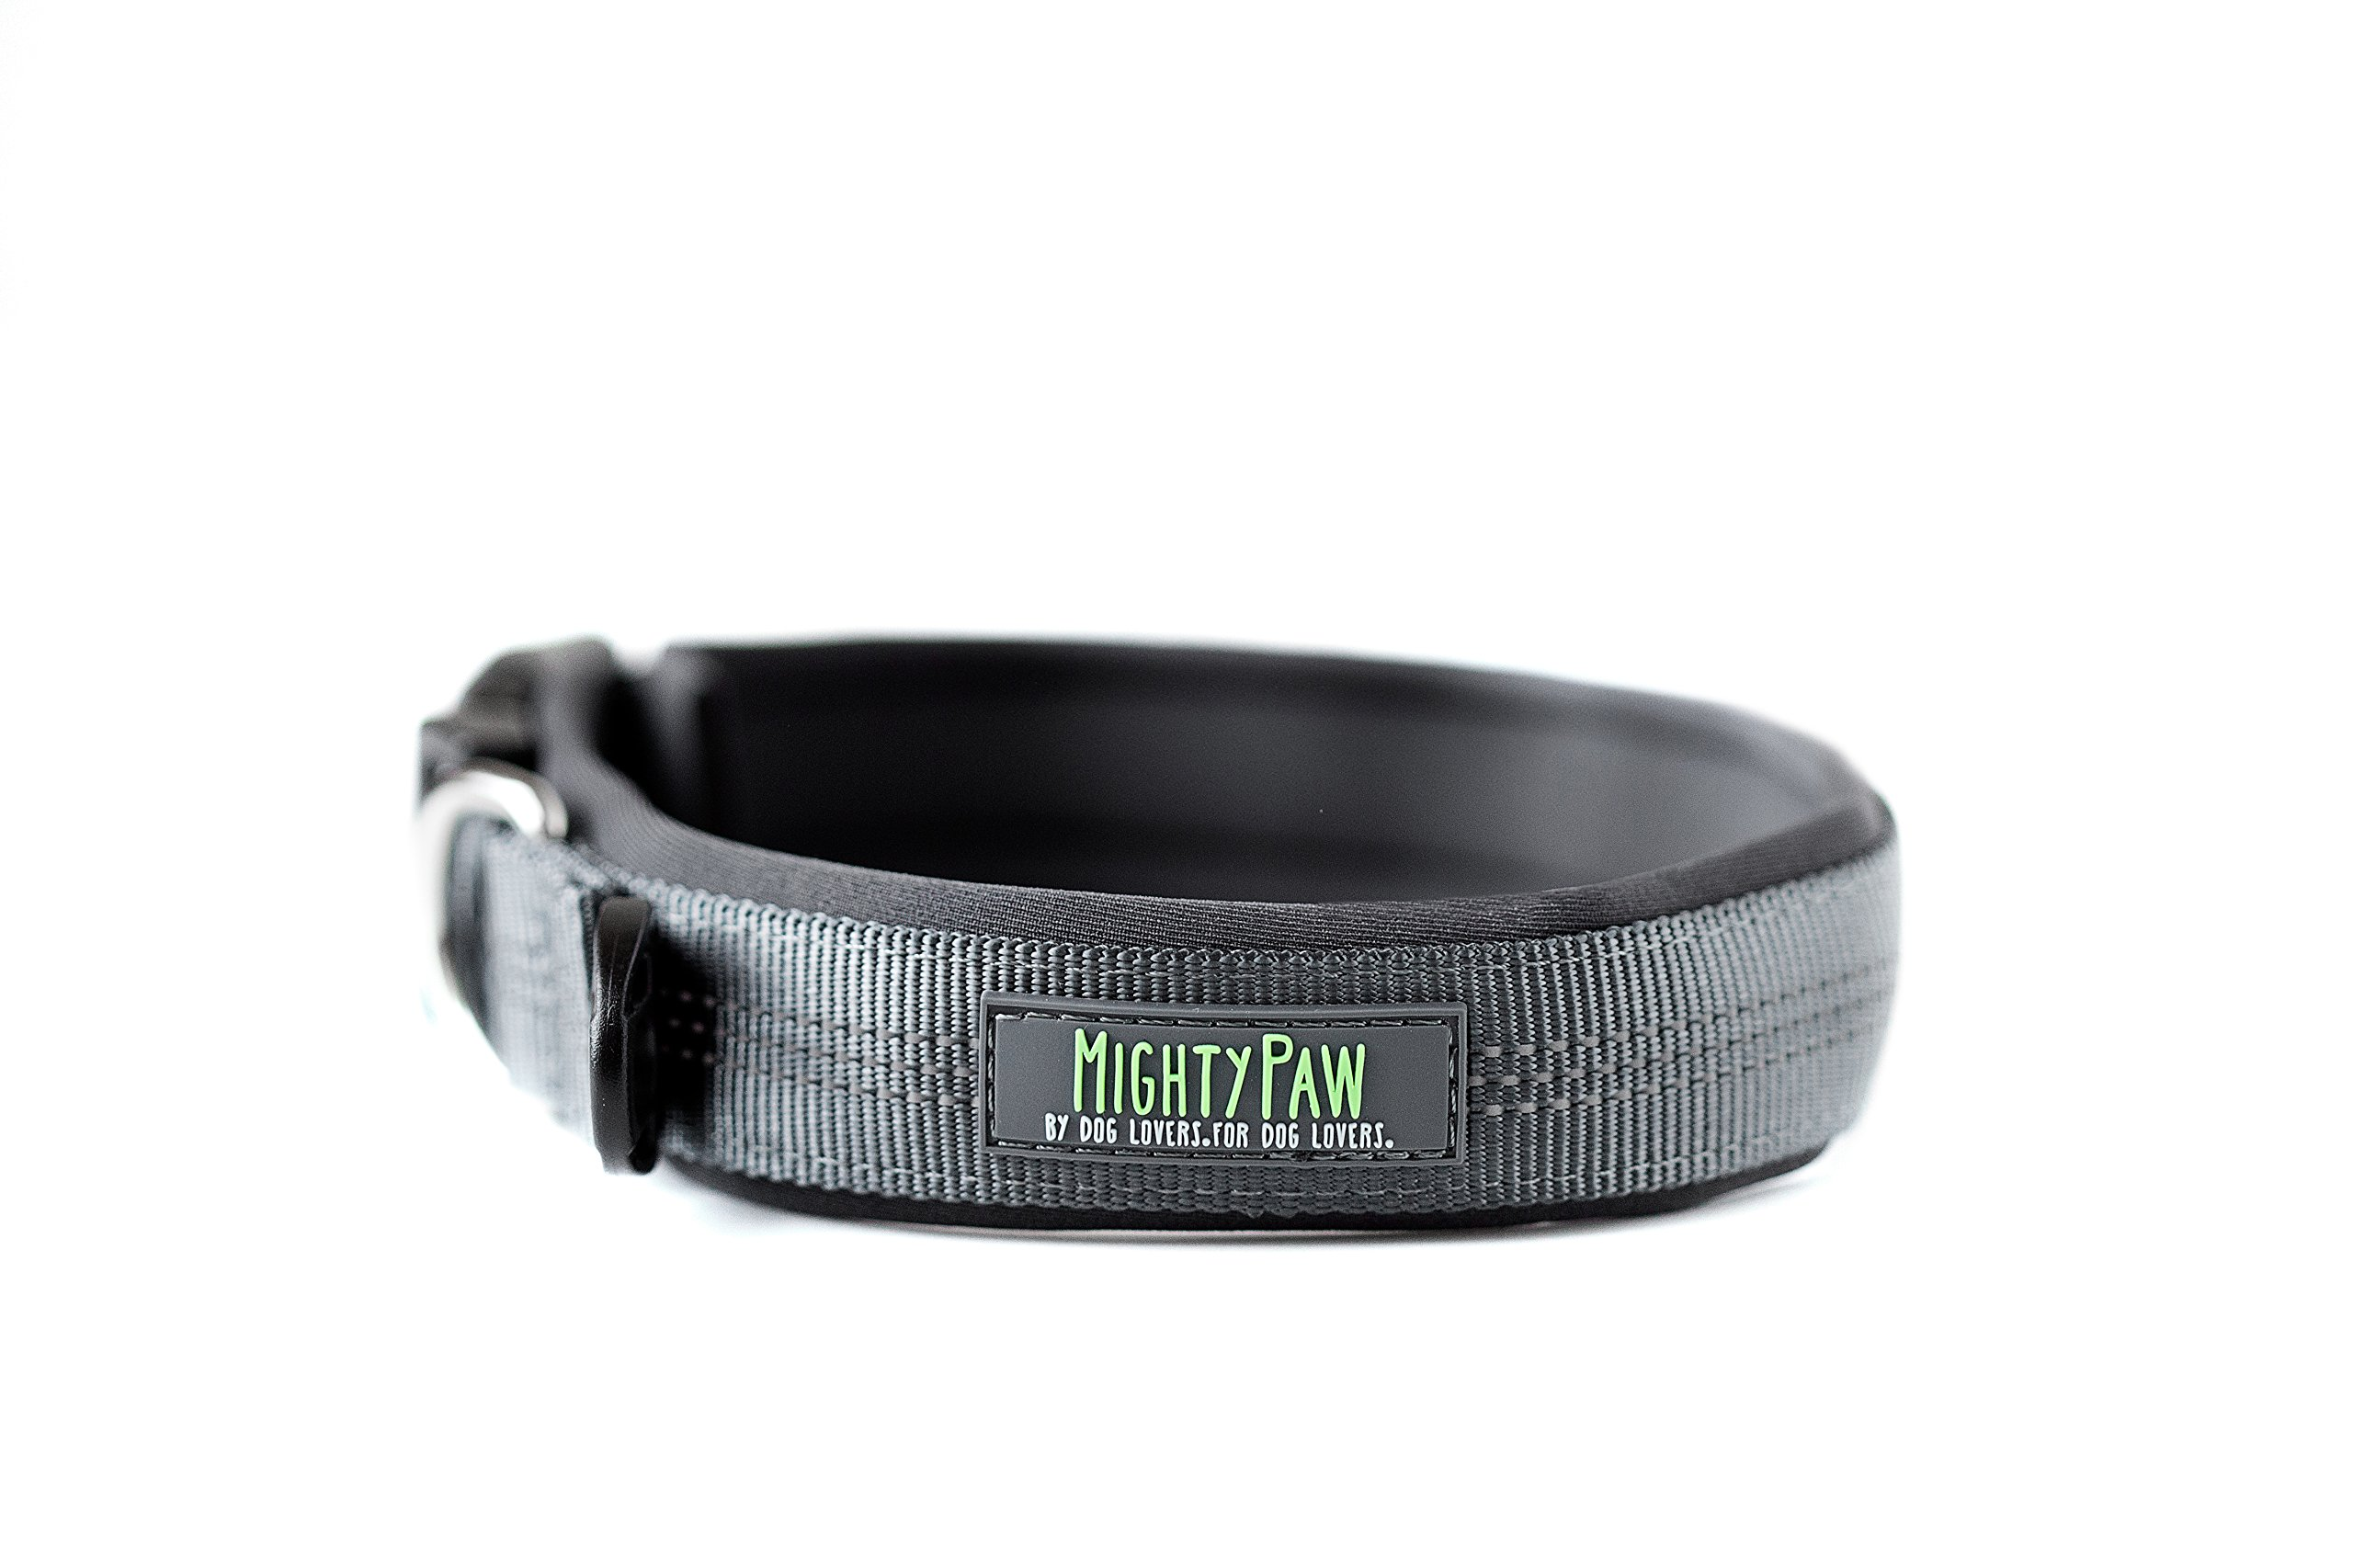 Mighty Paw Neoprene Padded Running Dog Collar, Premium Quality Sports Collar with Reflective Stitching, Extra Comfort for Active Dogs (Grey- Medium 15-18'') by Mighty Paw